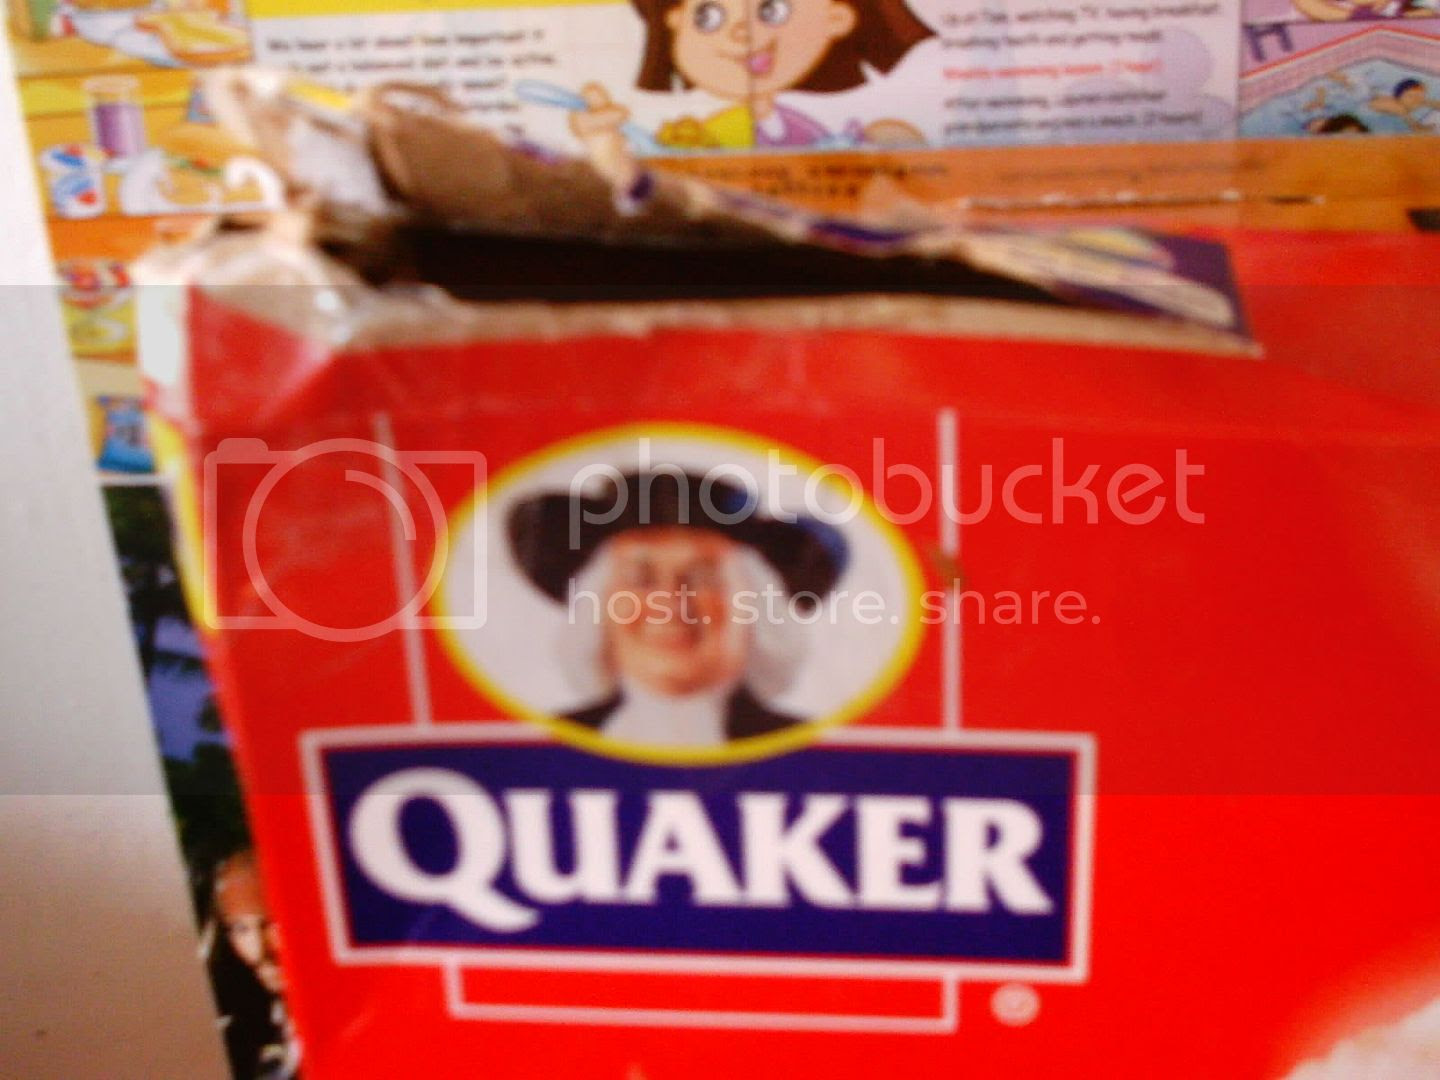 a typical dodgy Quaker type, yesterday